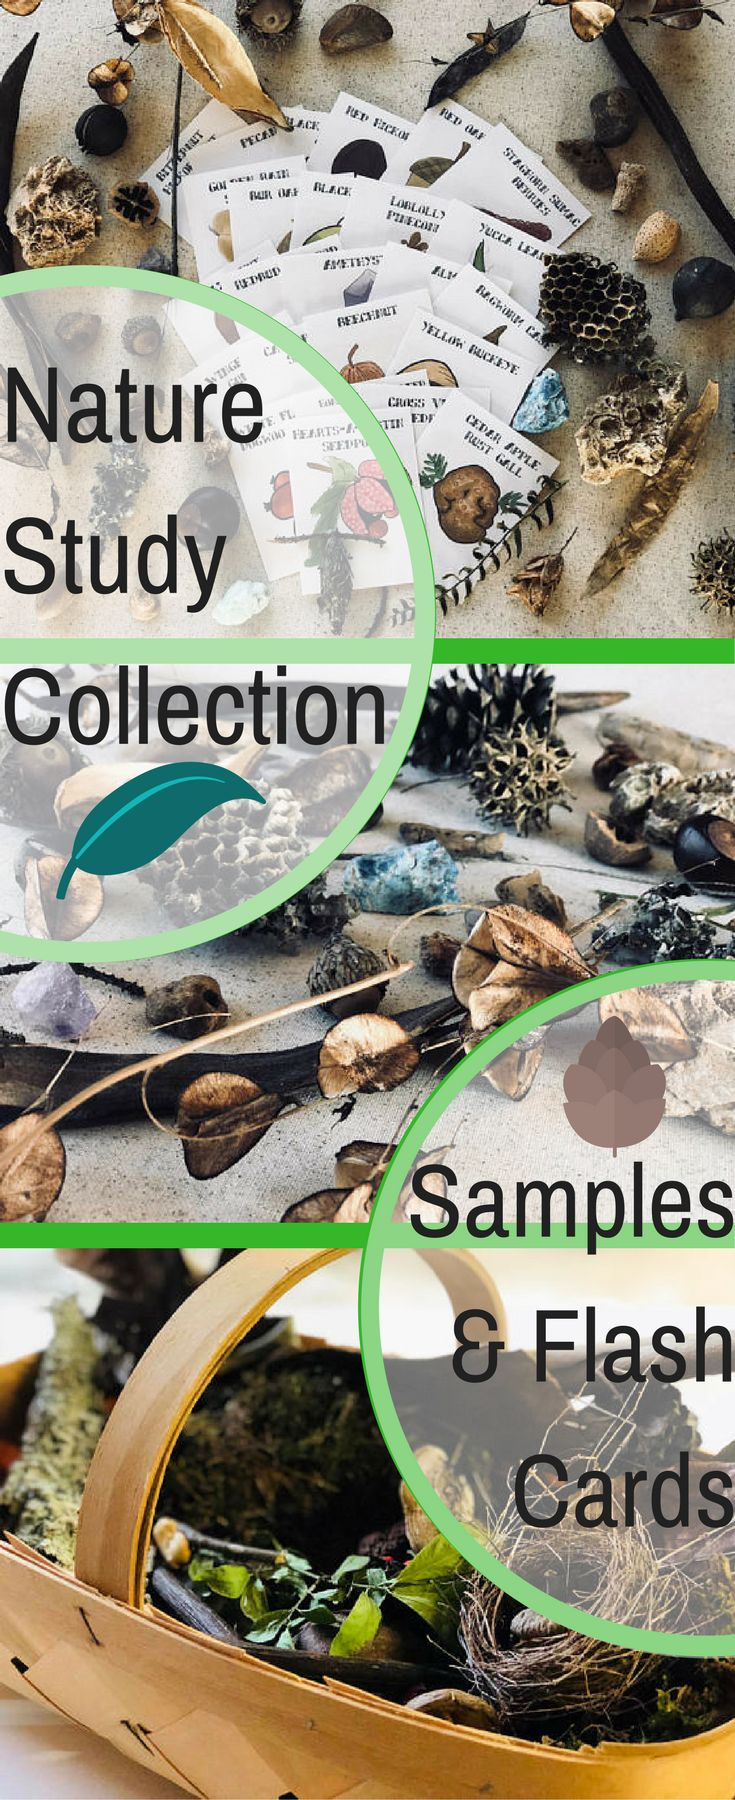 Nature Study Collection with Identification Flash Cards - Each collection contains at least 10 unique items. Rocks, minerals, shells, bones, nuts, berries, roots, dried leaves and flowers, snake skins, seed pods, lichen, moss, and much more. #homeschool #science #montessori #charlottemason #ad